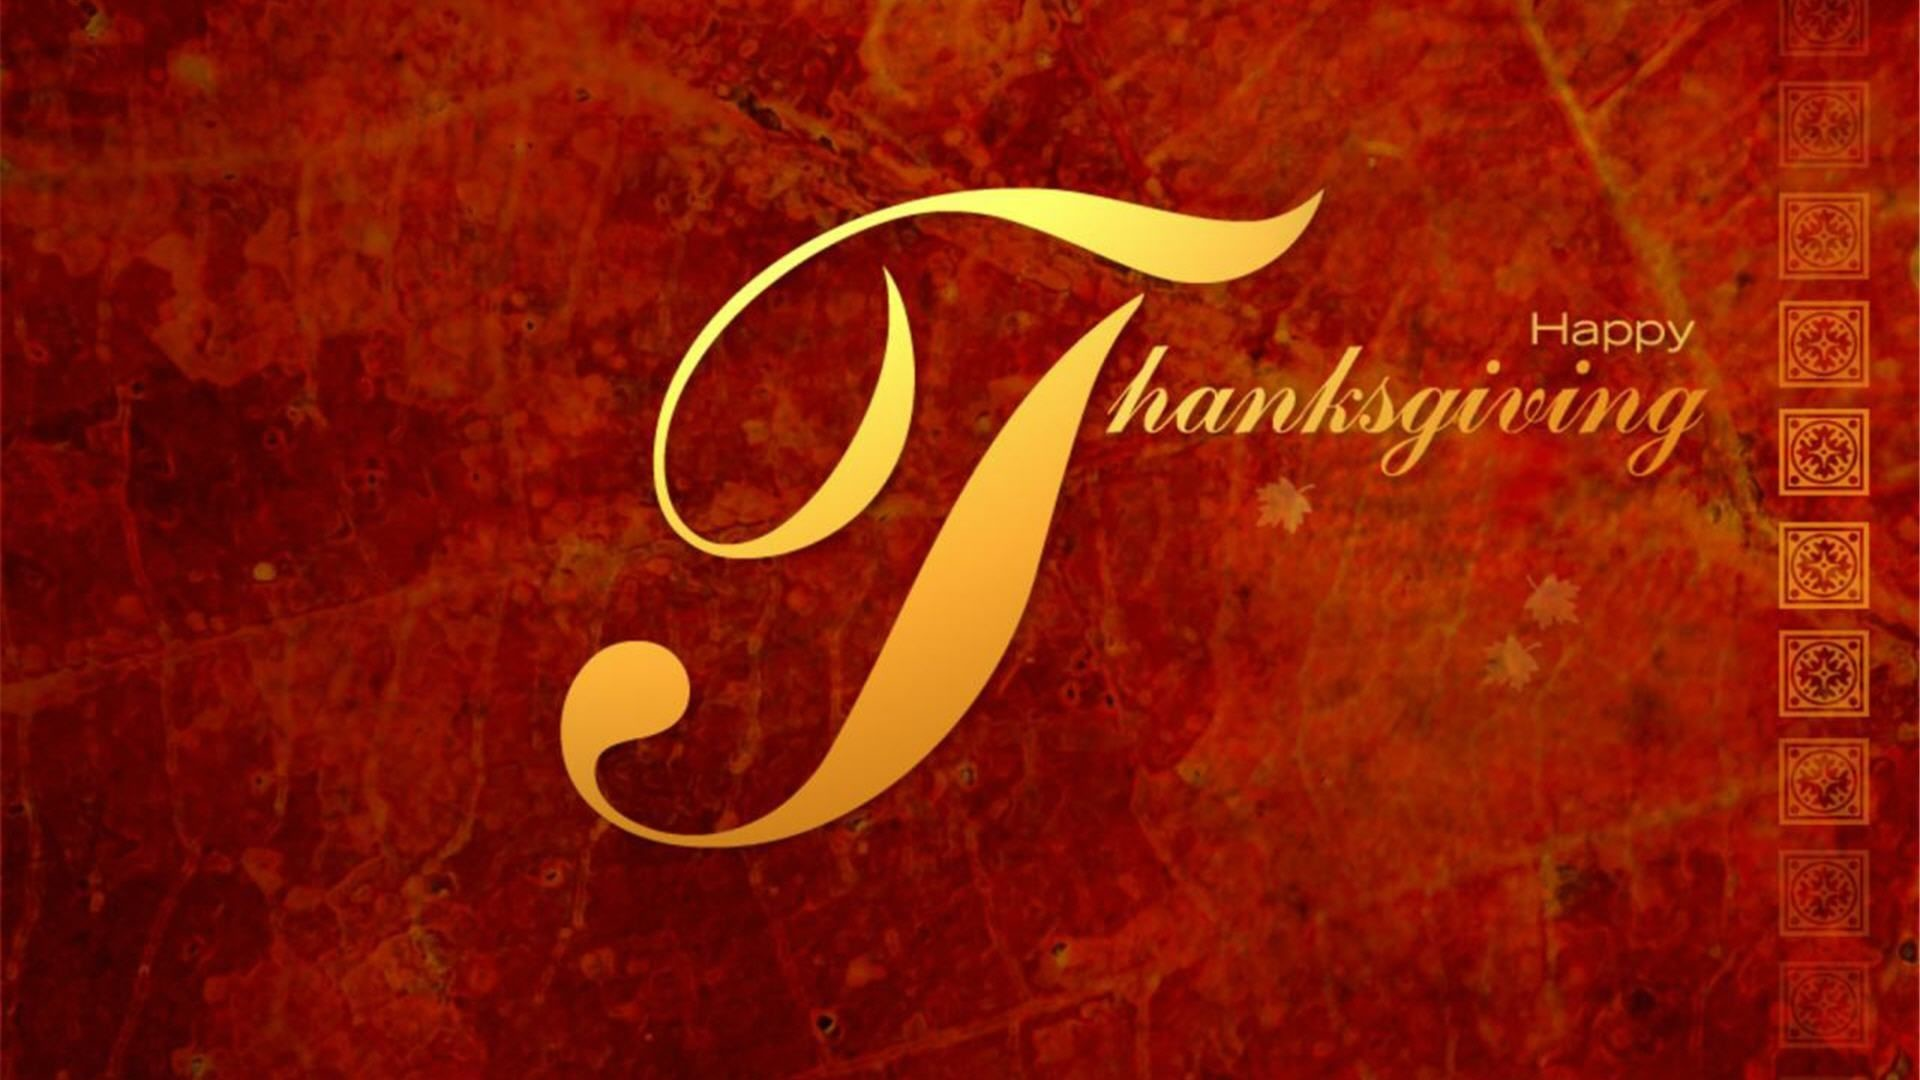 Res: 1920x1080, Free Thanksgiving Desktop iphone ipad Backgrounds Thanksgiving